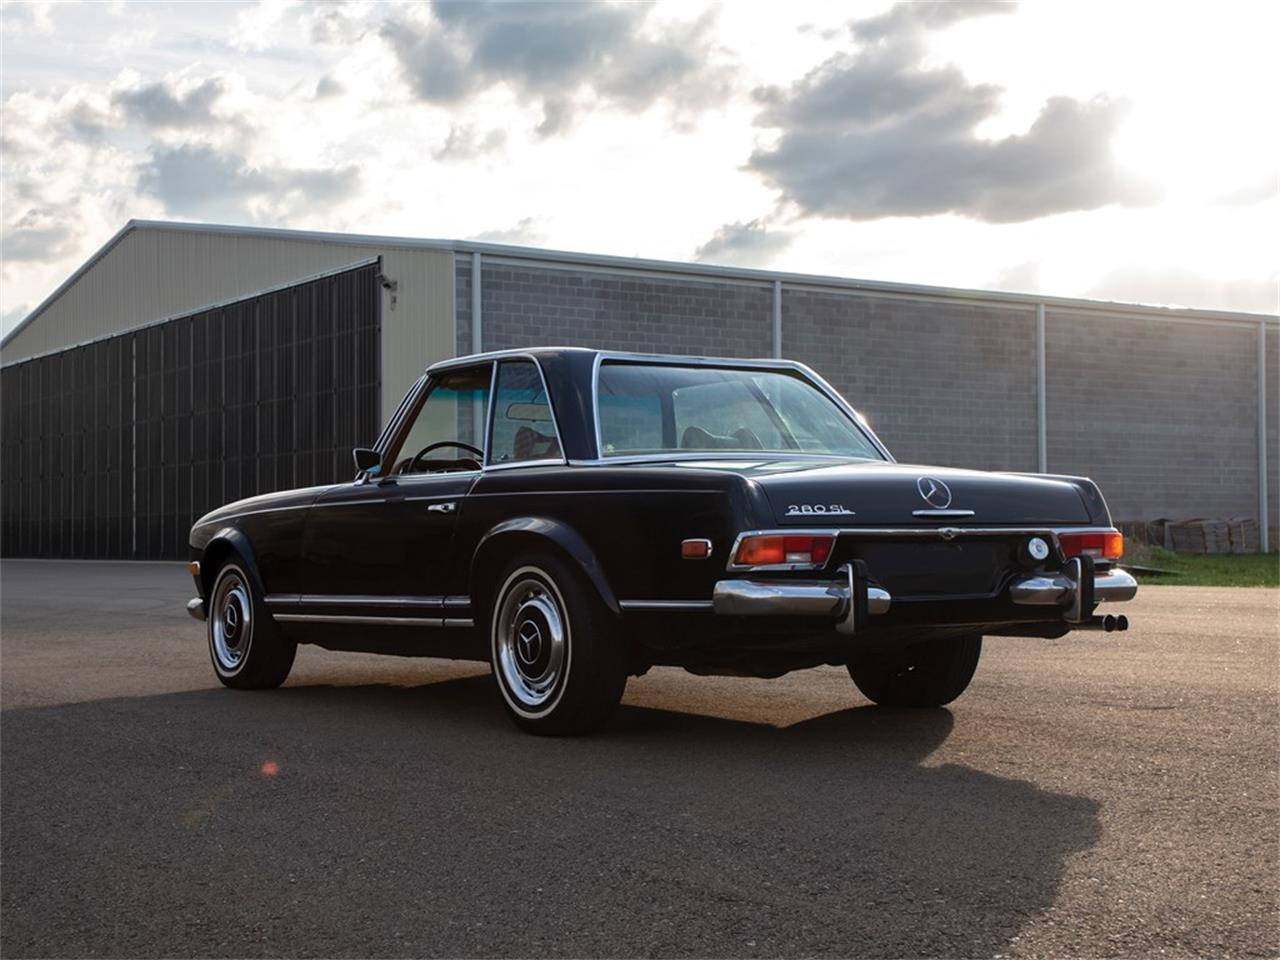 Large Picture of 1971 Mercedes-Benz 280SL located in Auburn Indiana Auction Vehicle Offered by RM Sotheby's - Q16H